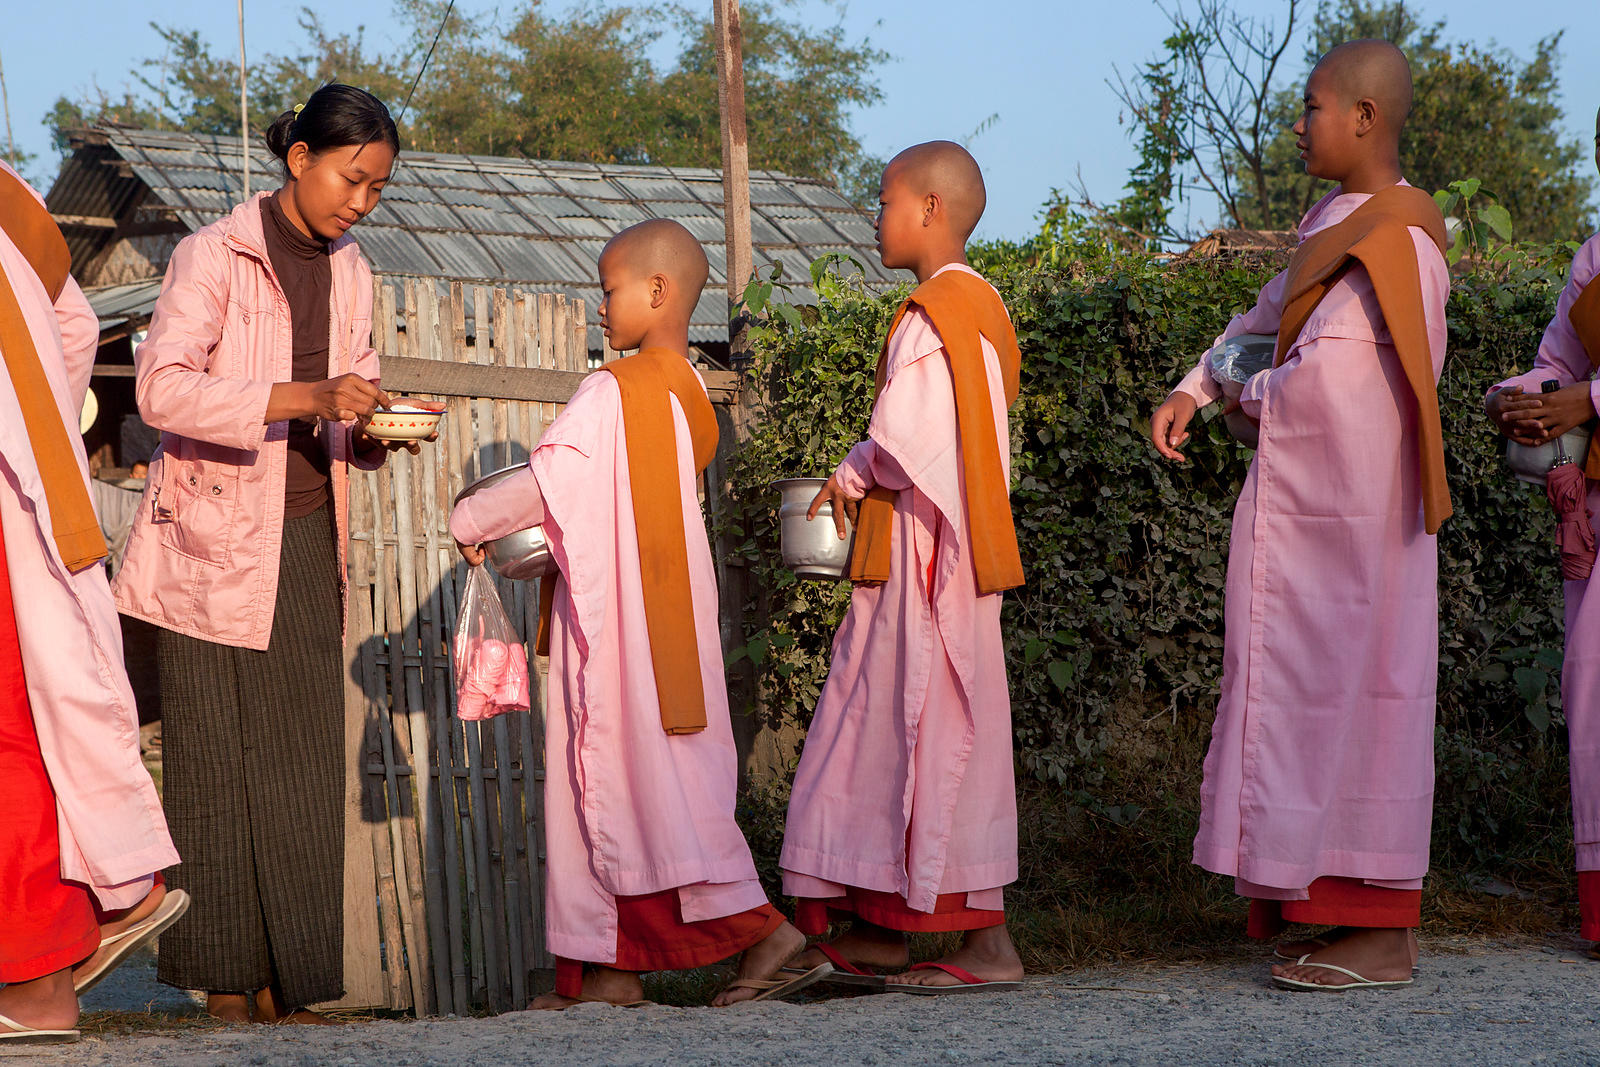 Nonnes faisant la quête à Nyaungshwe, Birmanie / Nuns doing the quest in Nyaungshwe, Burma